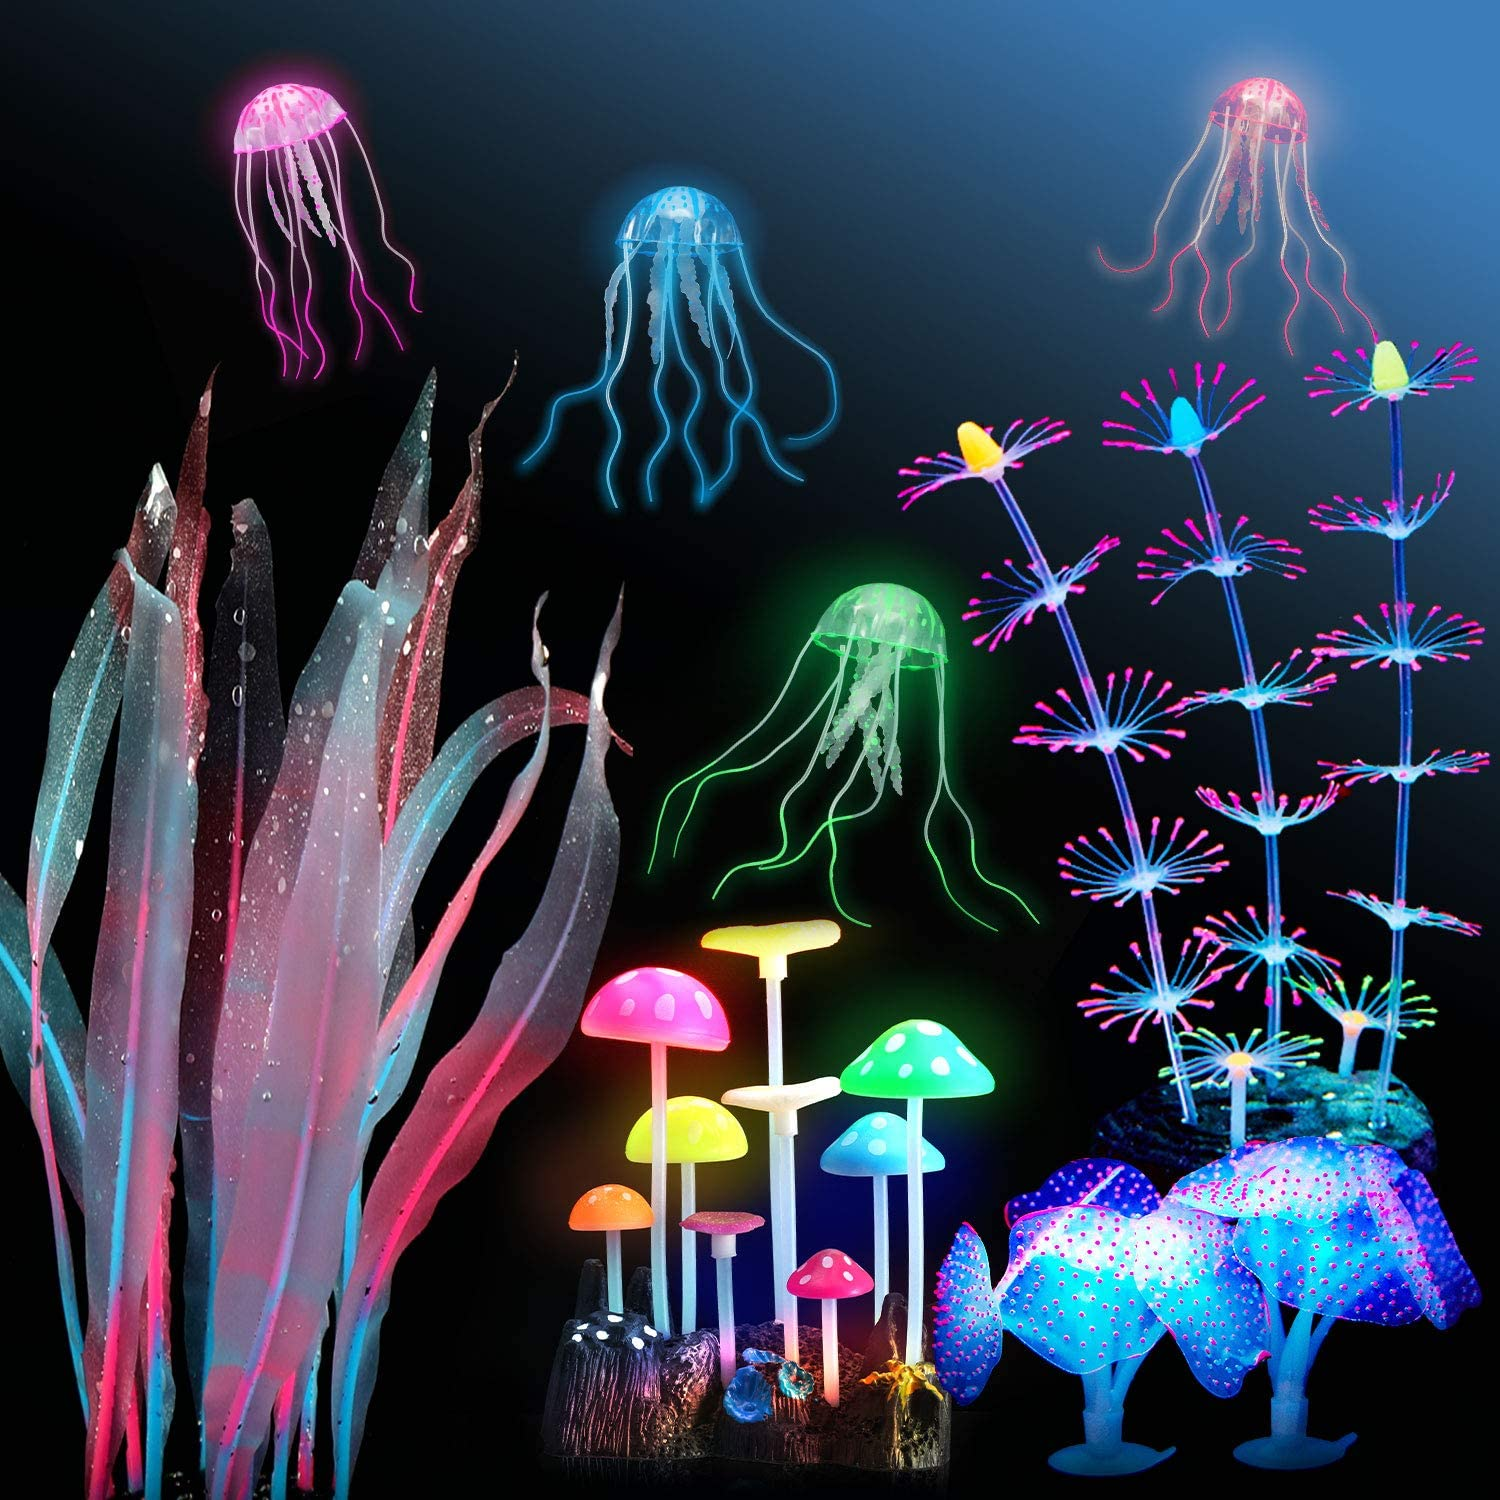 Boao 9 Pieces Aquarium Fish Tank Decorations Glowing Silicone Aquarium Ornaments Artificial Floating Jellyfish Simulation Coral Mushroom Plant Ornament for Fish Tank Accessories